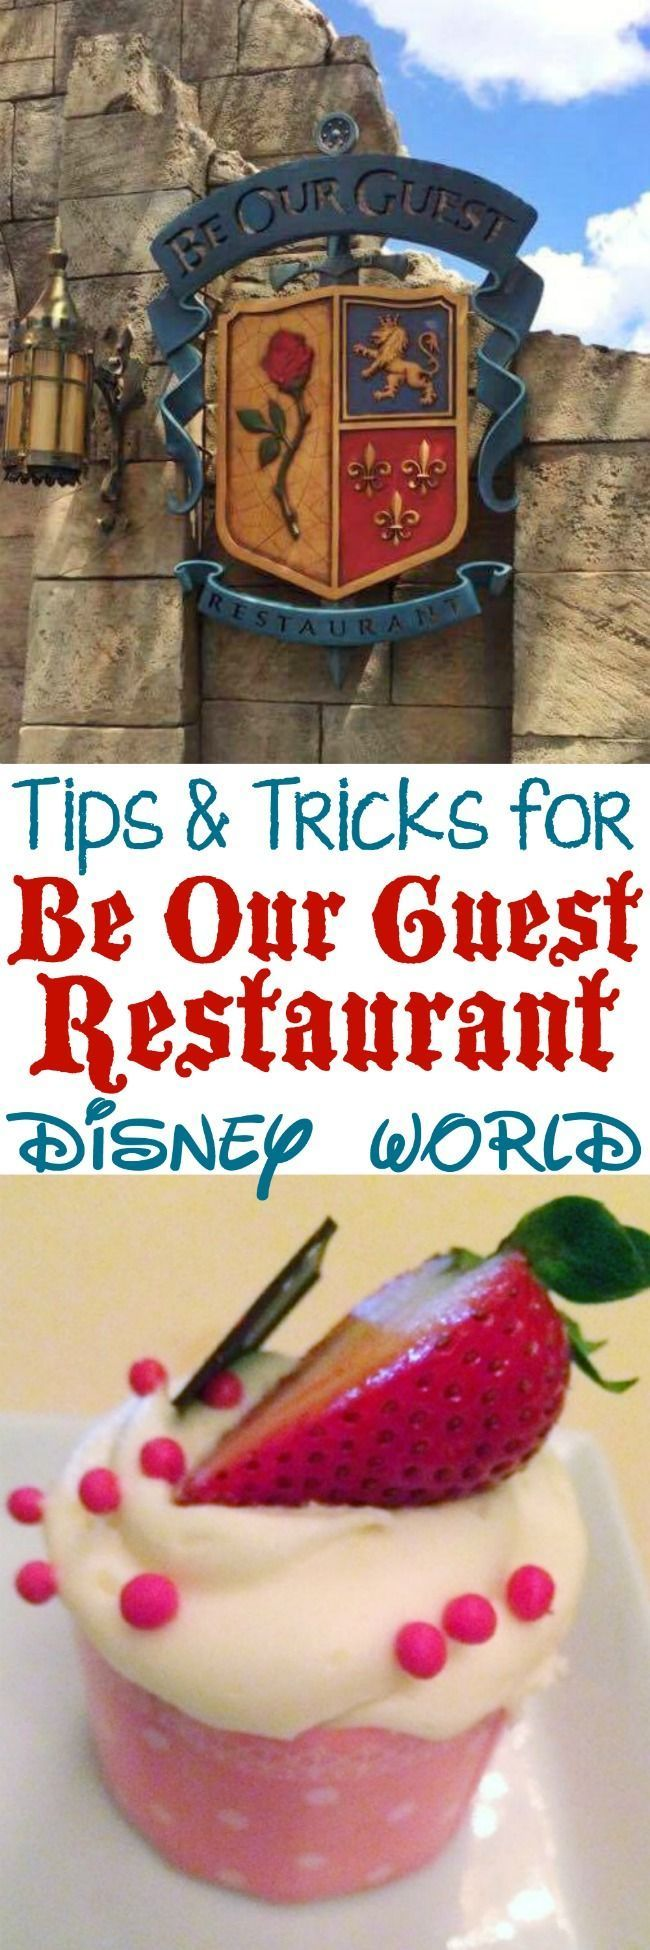 Tips and tricks for getting a reservation at Be Our Guest Restaurant at Disney World for Breakfast, Lunch or Dinner!